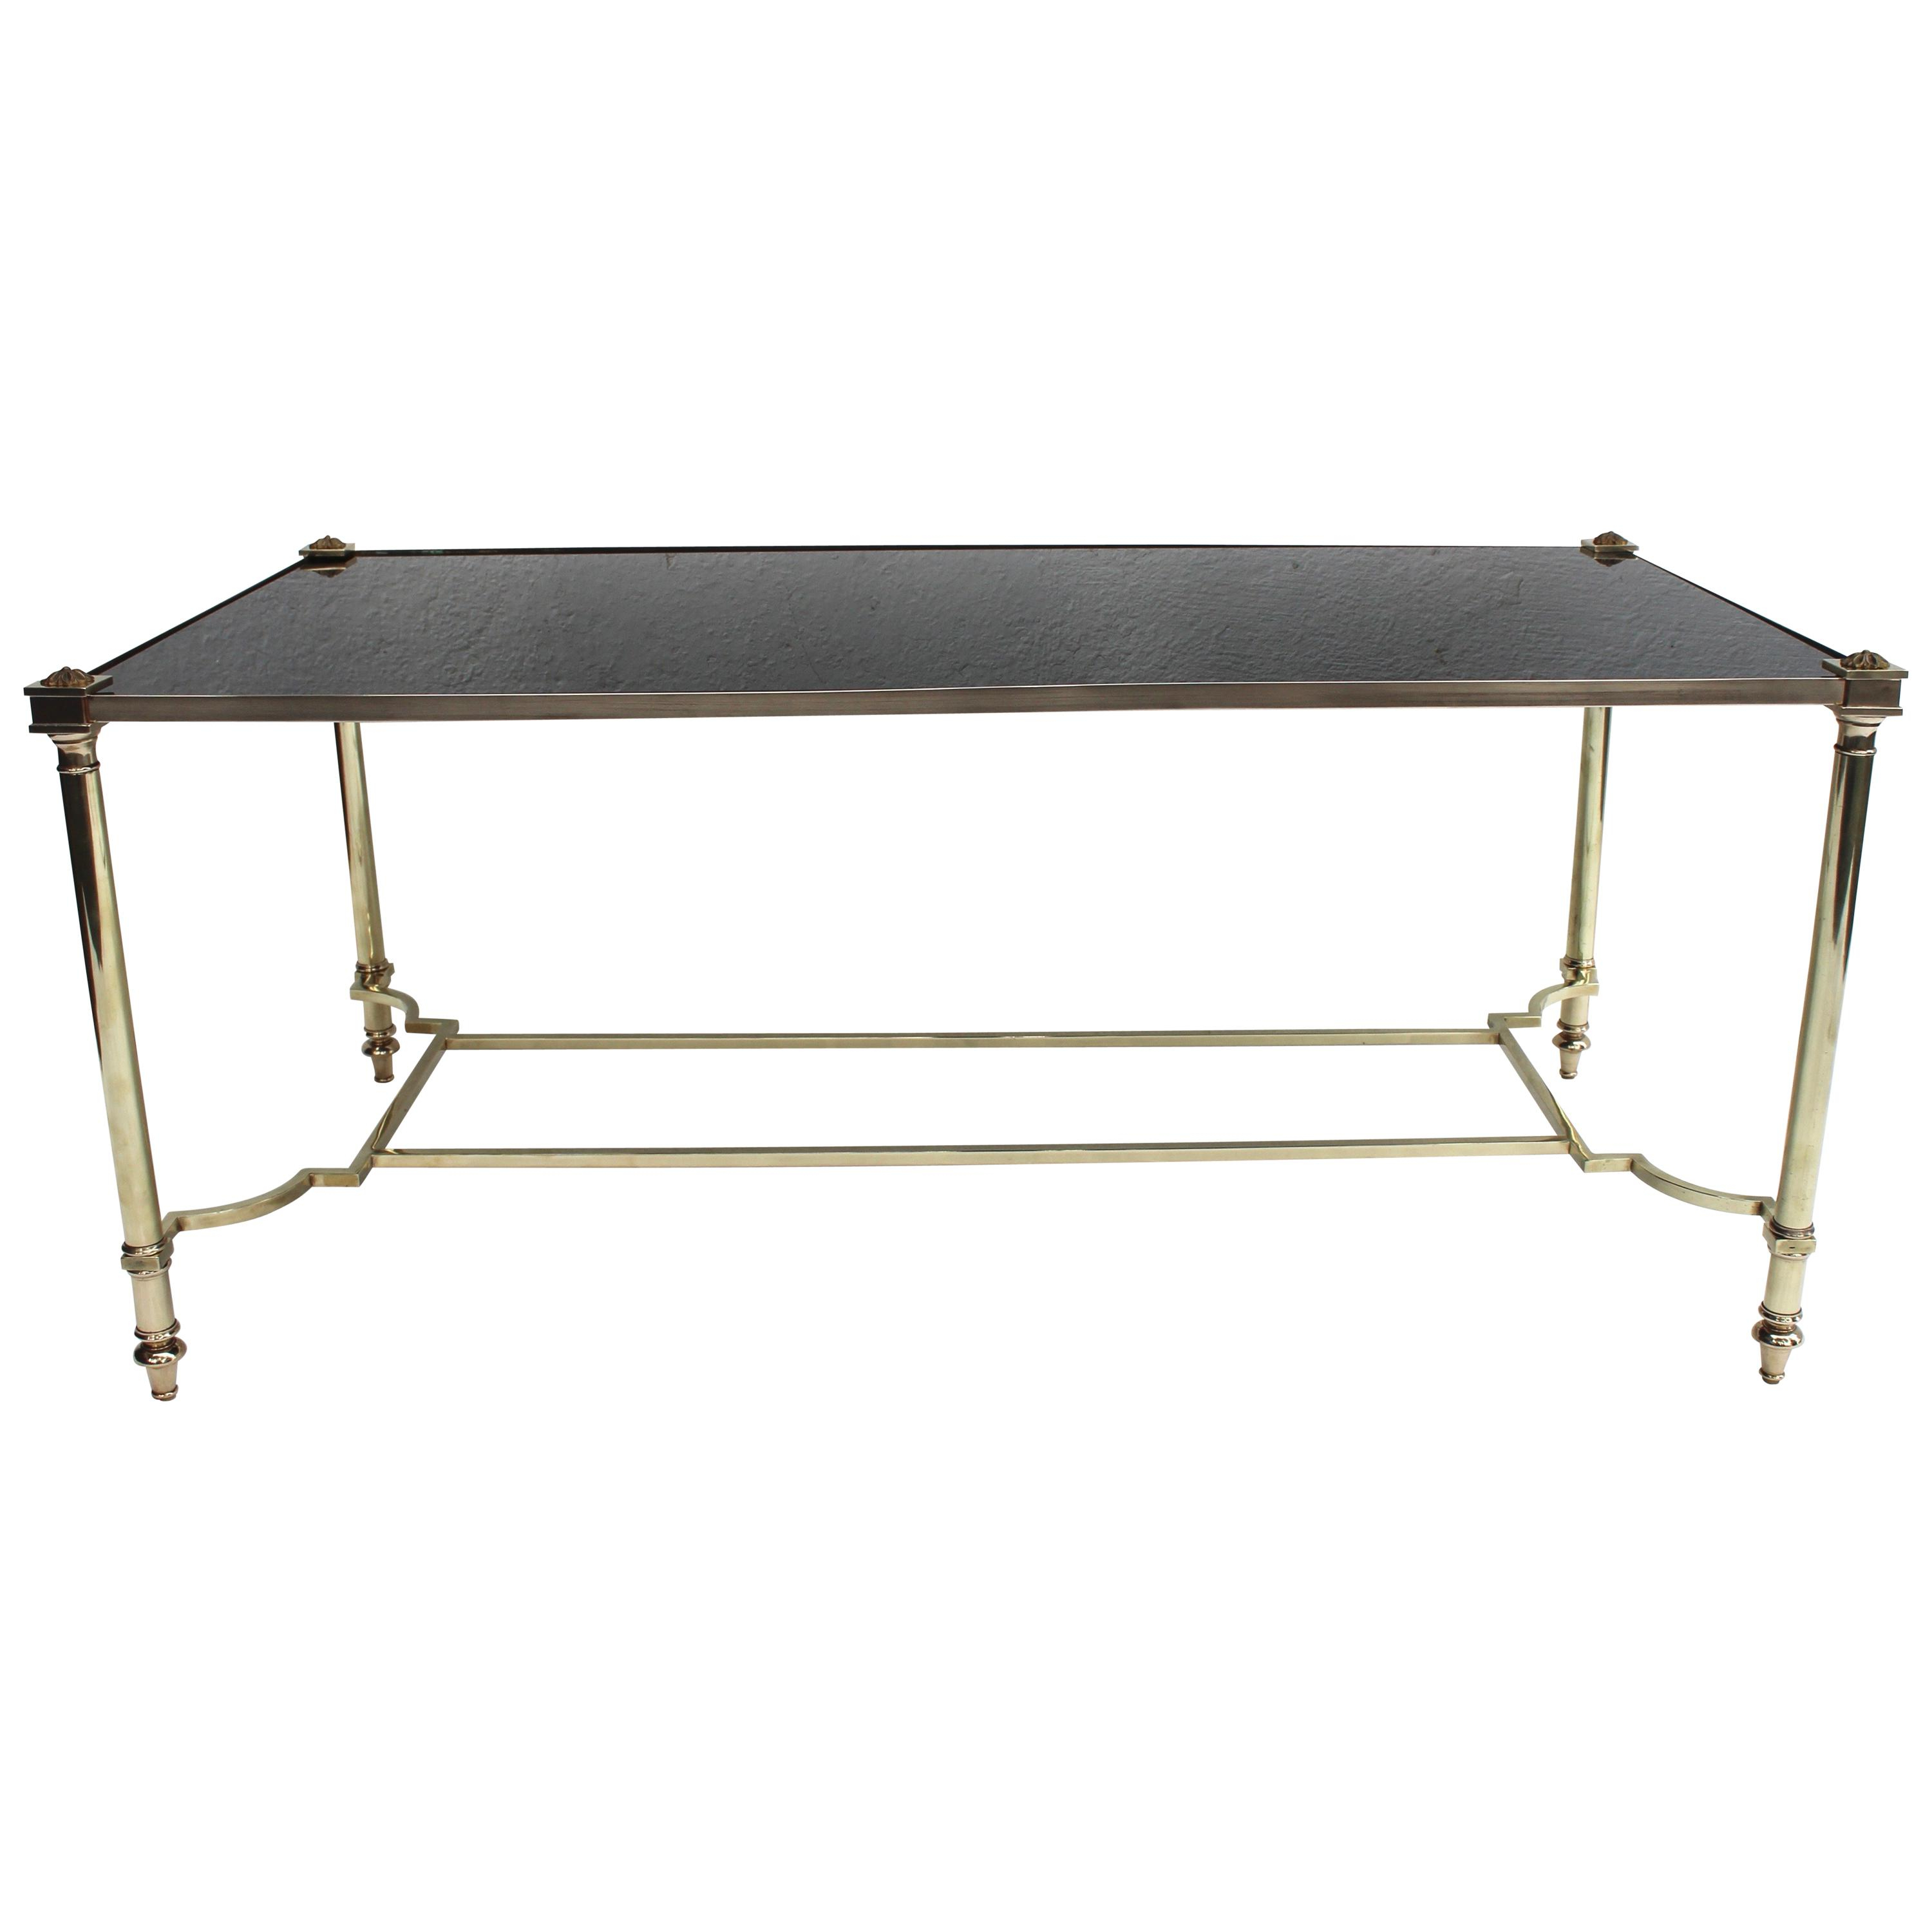 Maison Jansen Furniture – 645 For Sale At 1stdibs With Regard To Mix Leather Imprint Metal Frame Console Tables (View 20 of 20)